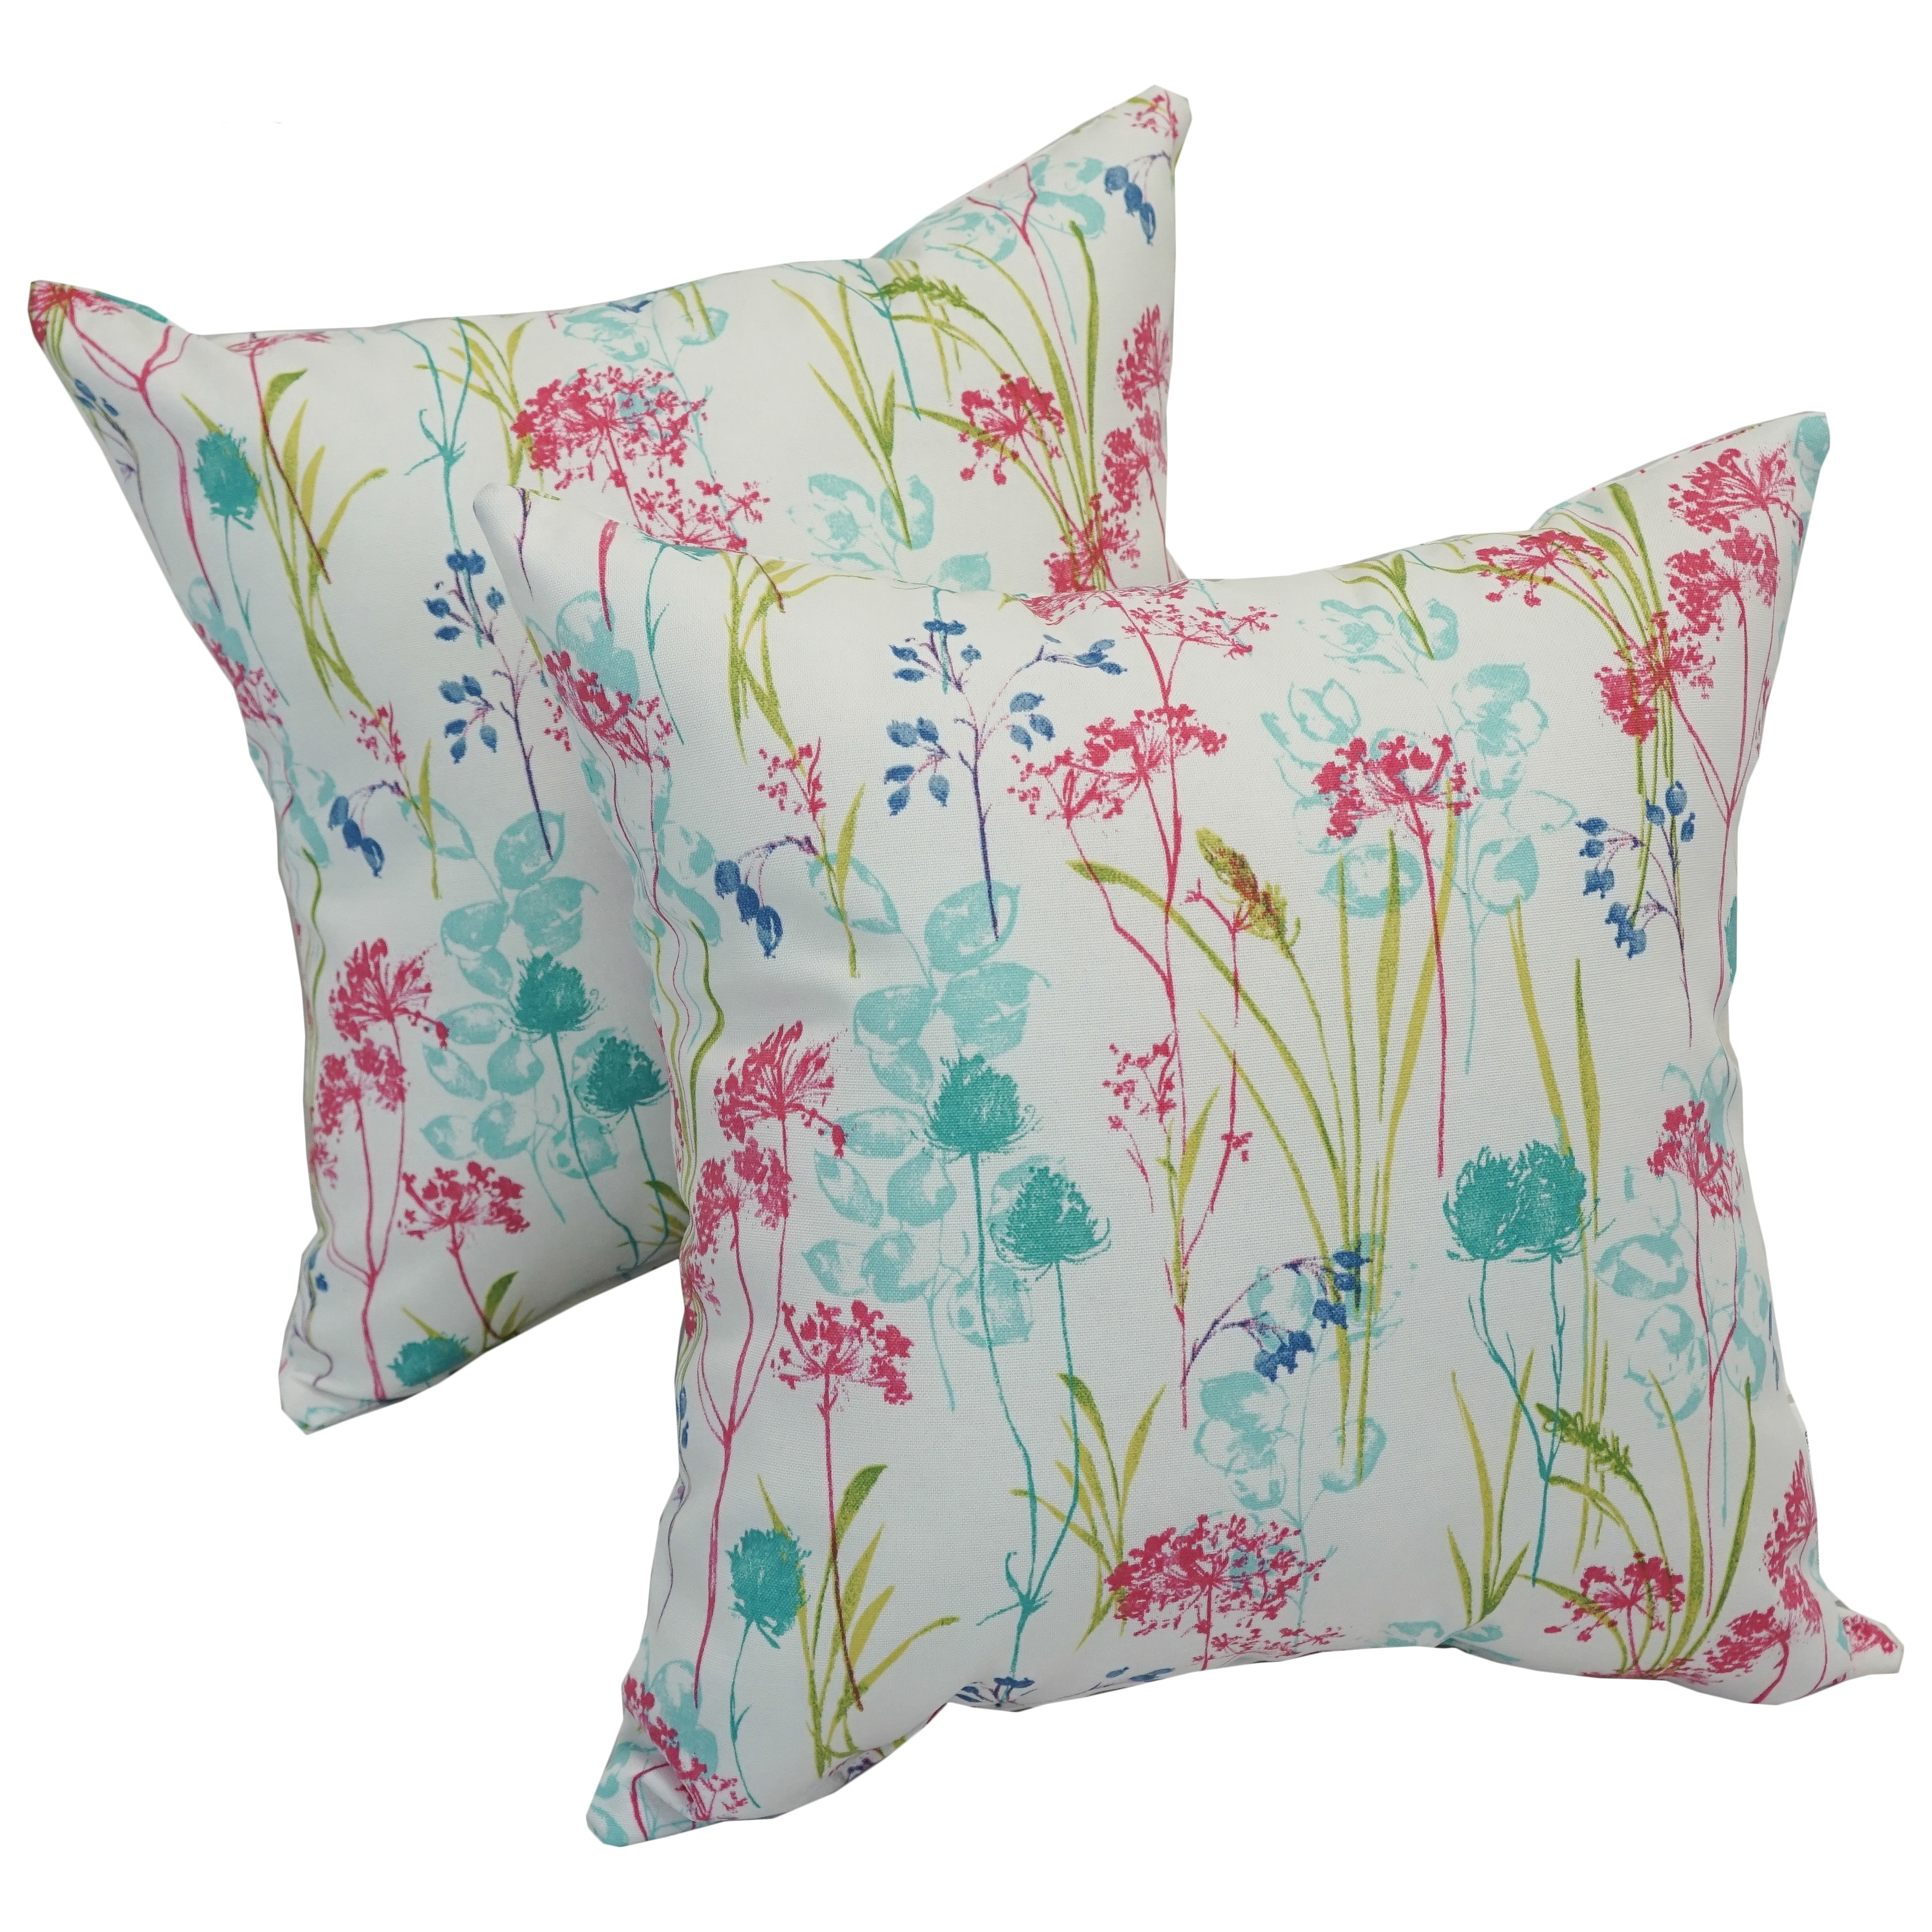 Outdoor Pillows Set Of 2.Solarium Windbloom 17 Inch Indoor Outdoor Throw Pillows Set Of 2